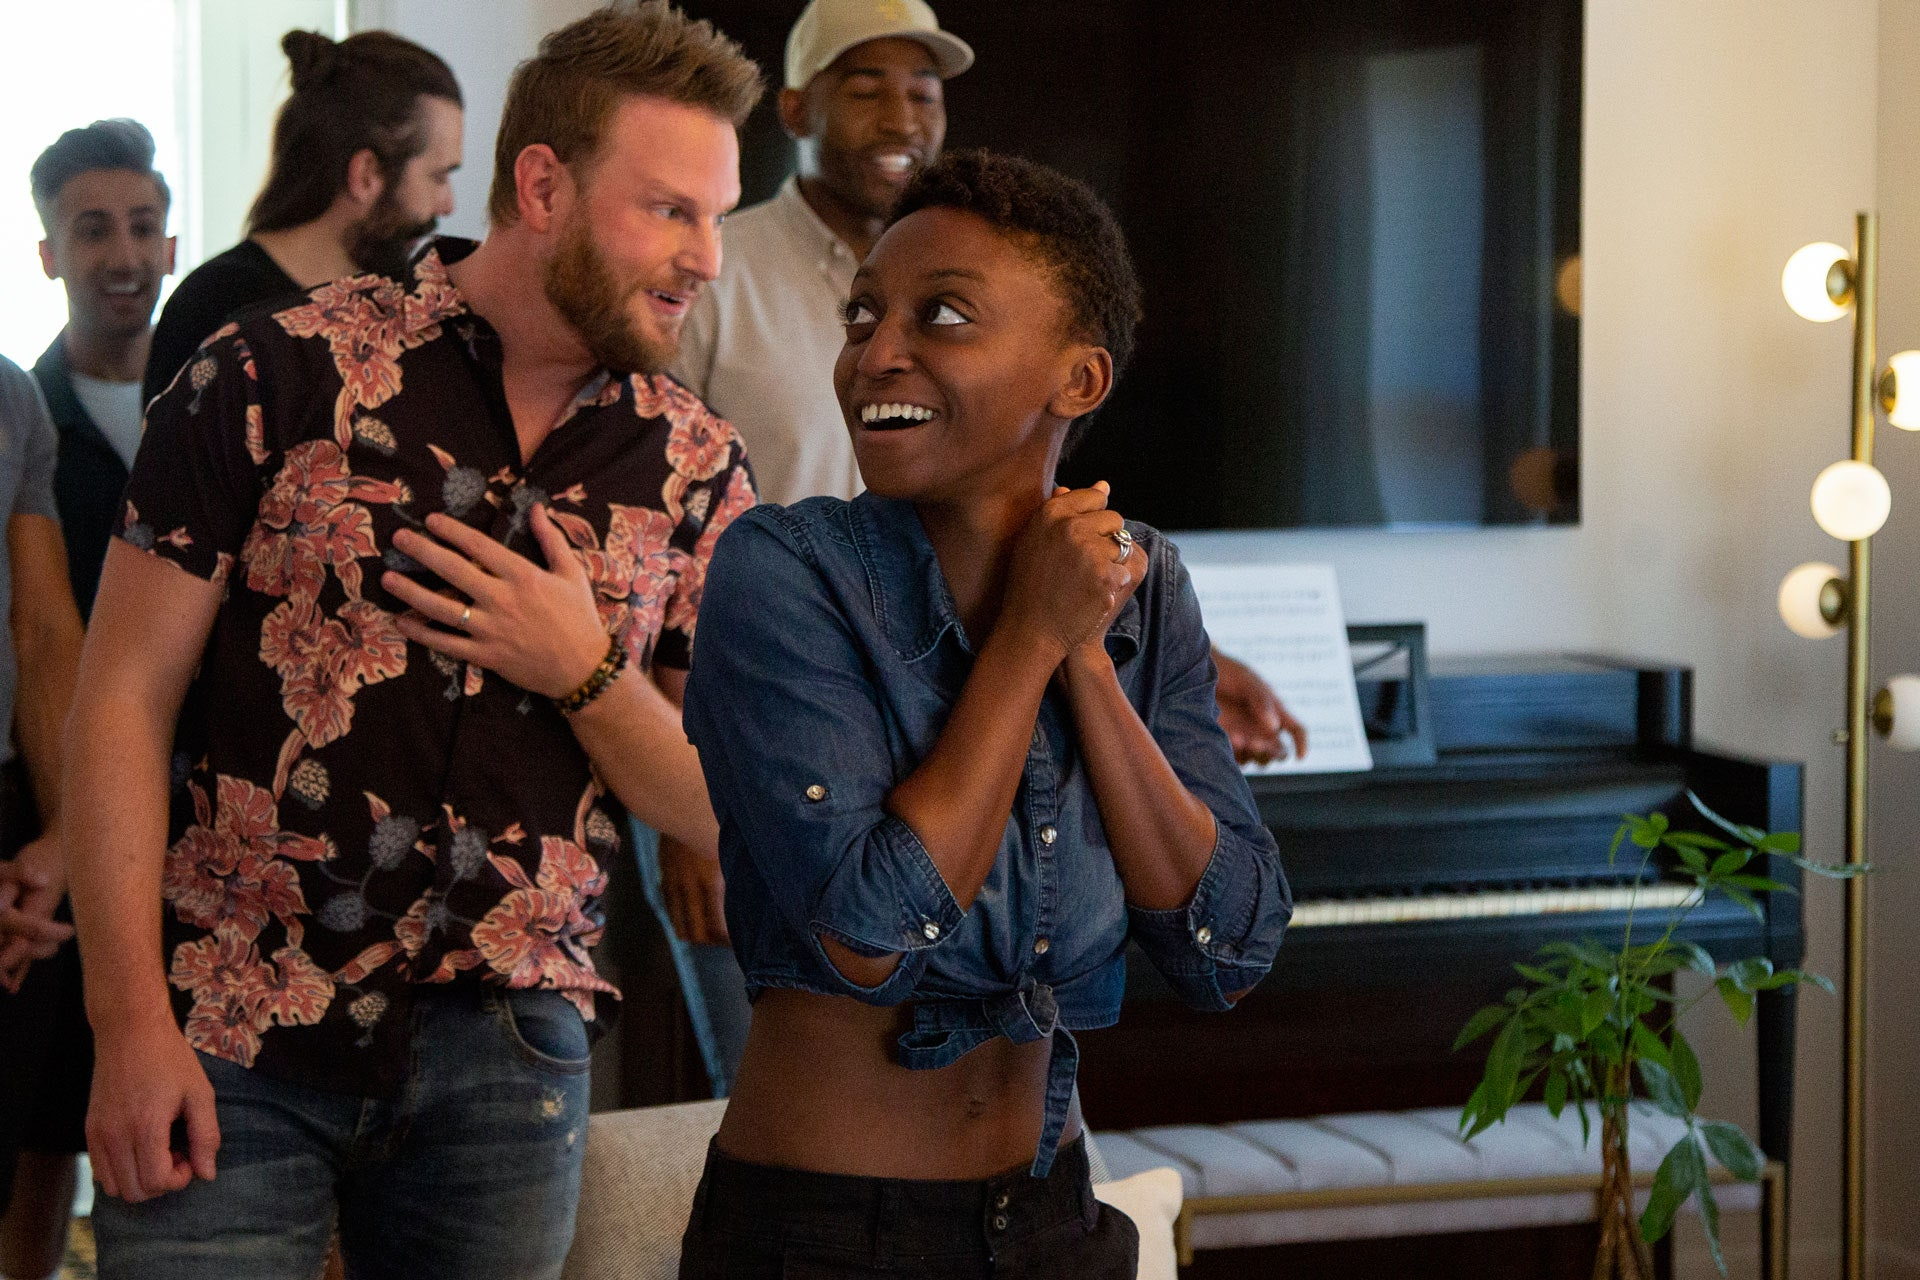 Queer Eye hero Jess reacts with surprise and delight to her remodeled home. The Fab Five follow her into the room.